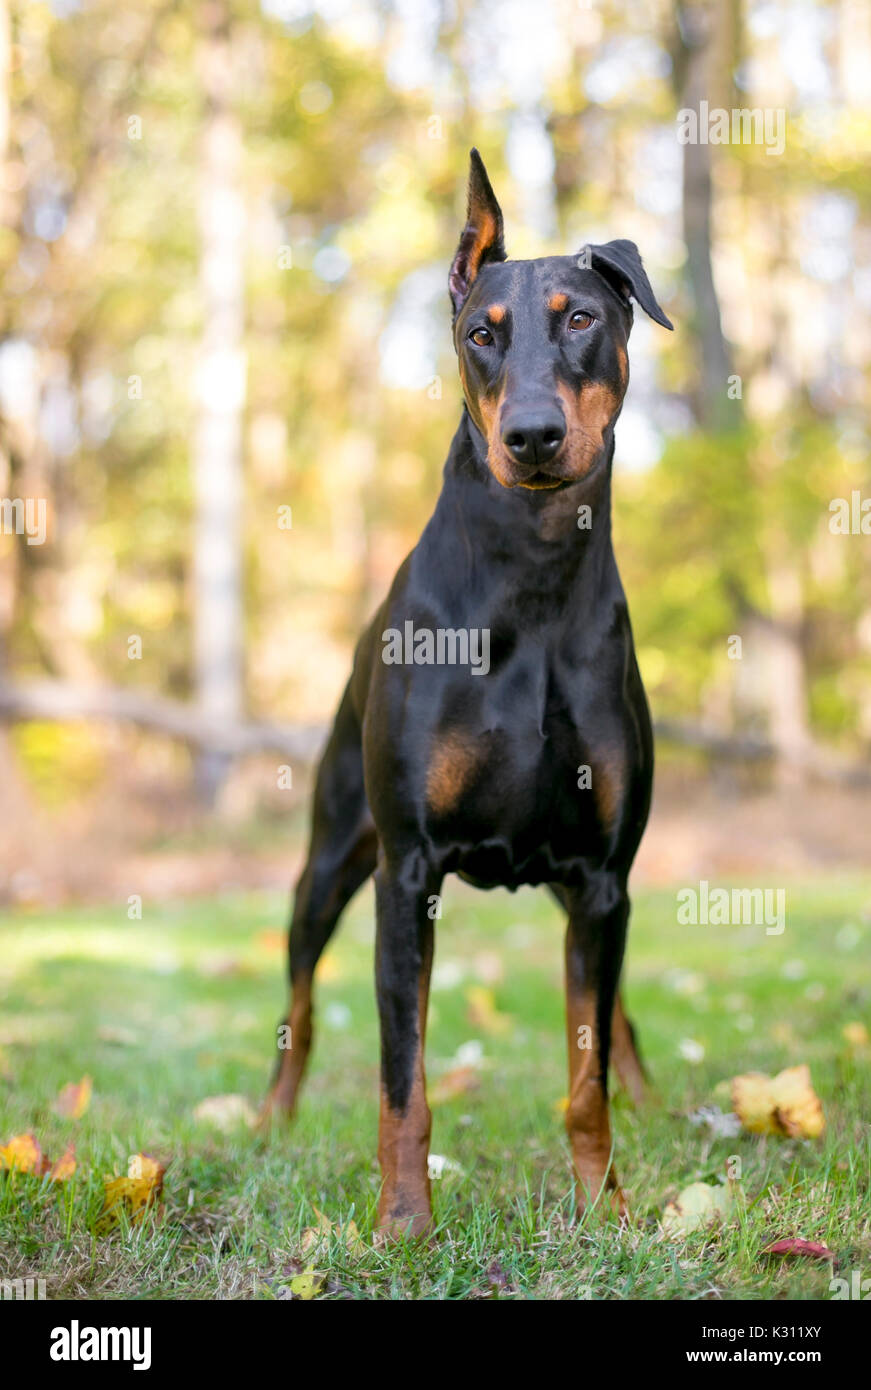 a black and red doberman pinscher dog standing outdoors stock photo